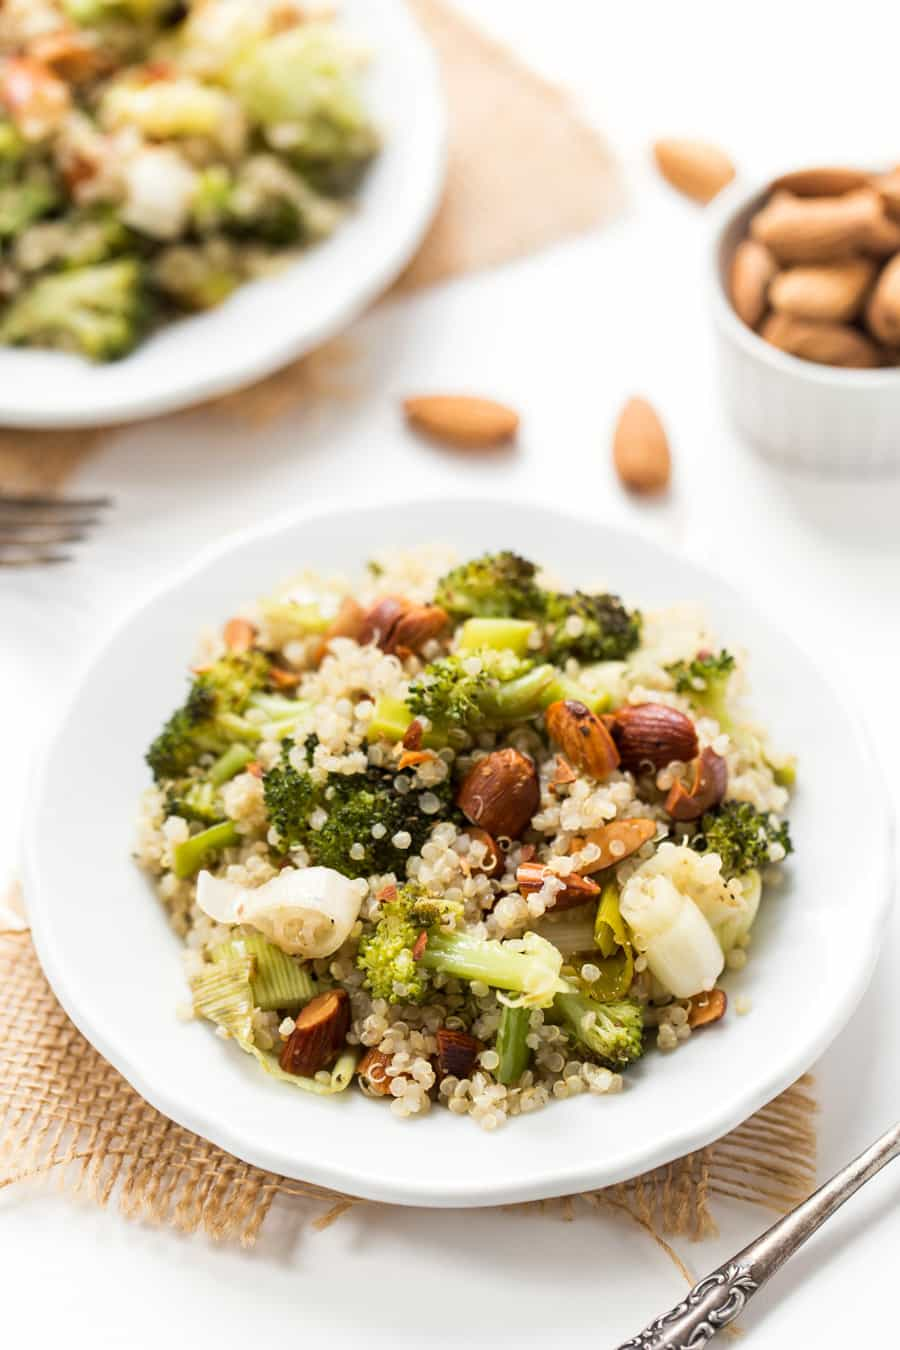 This Roasted Leek & Broccoli Quinoa Salad is the perfect summertime side dish! Grab what you need at the farmer's market and bring it to your next outdoor BBQ!